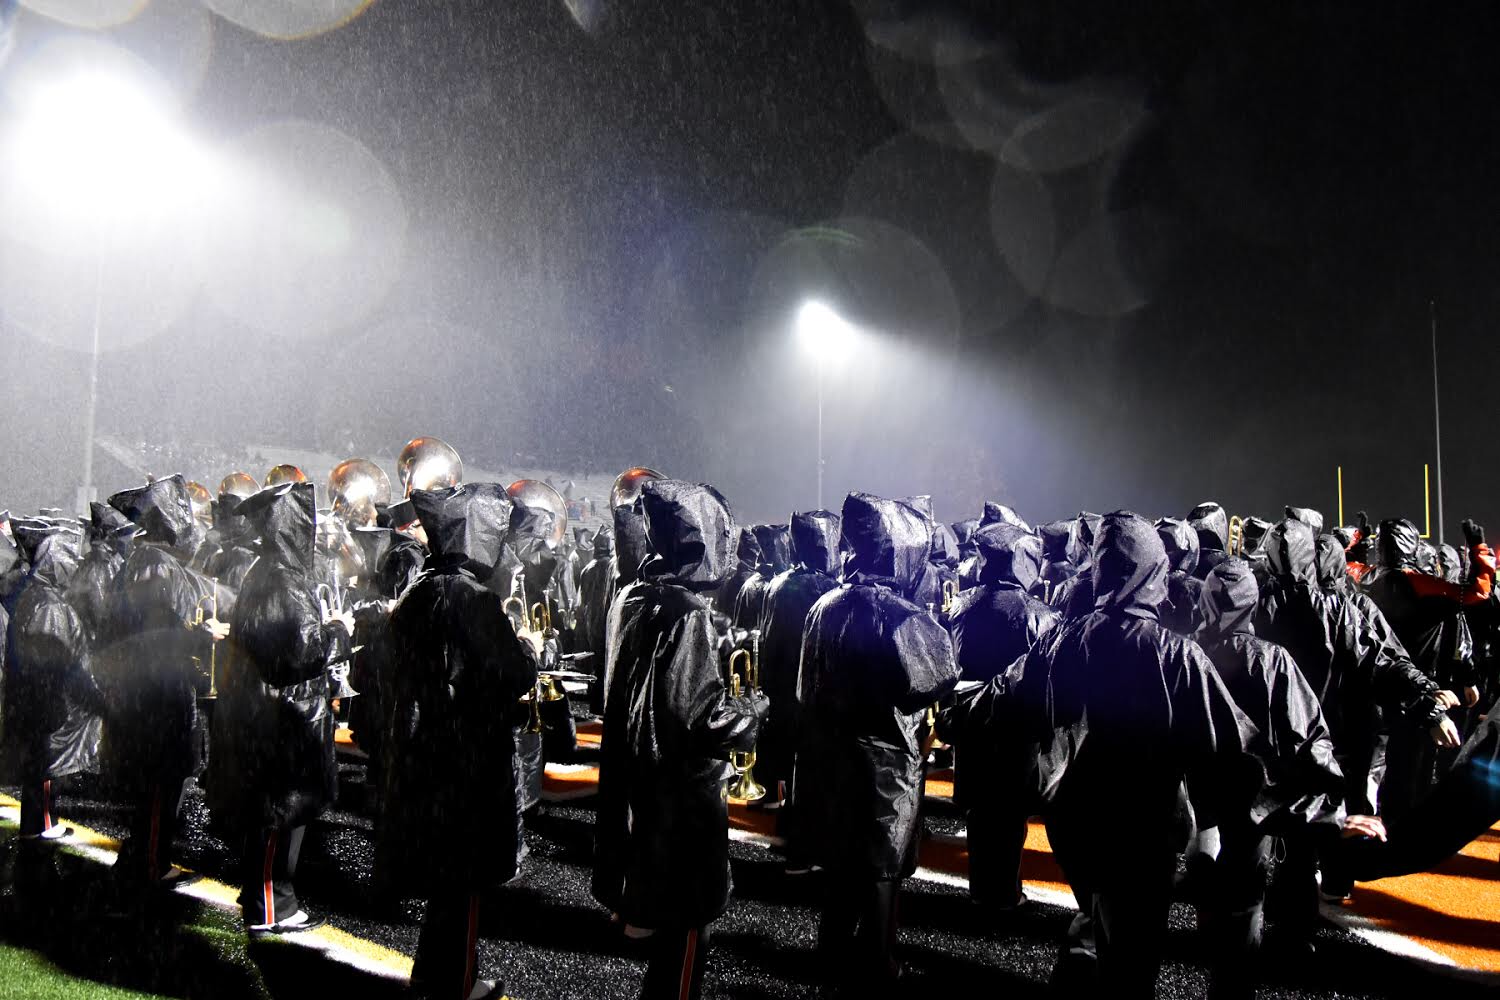 ANXIOUS TO PERFORM IN THE RAIN, the marching band is ready to do their first performance of the year in the rain.